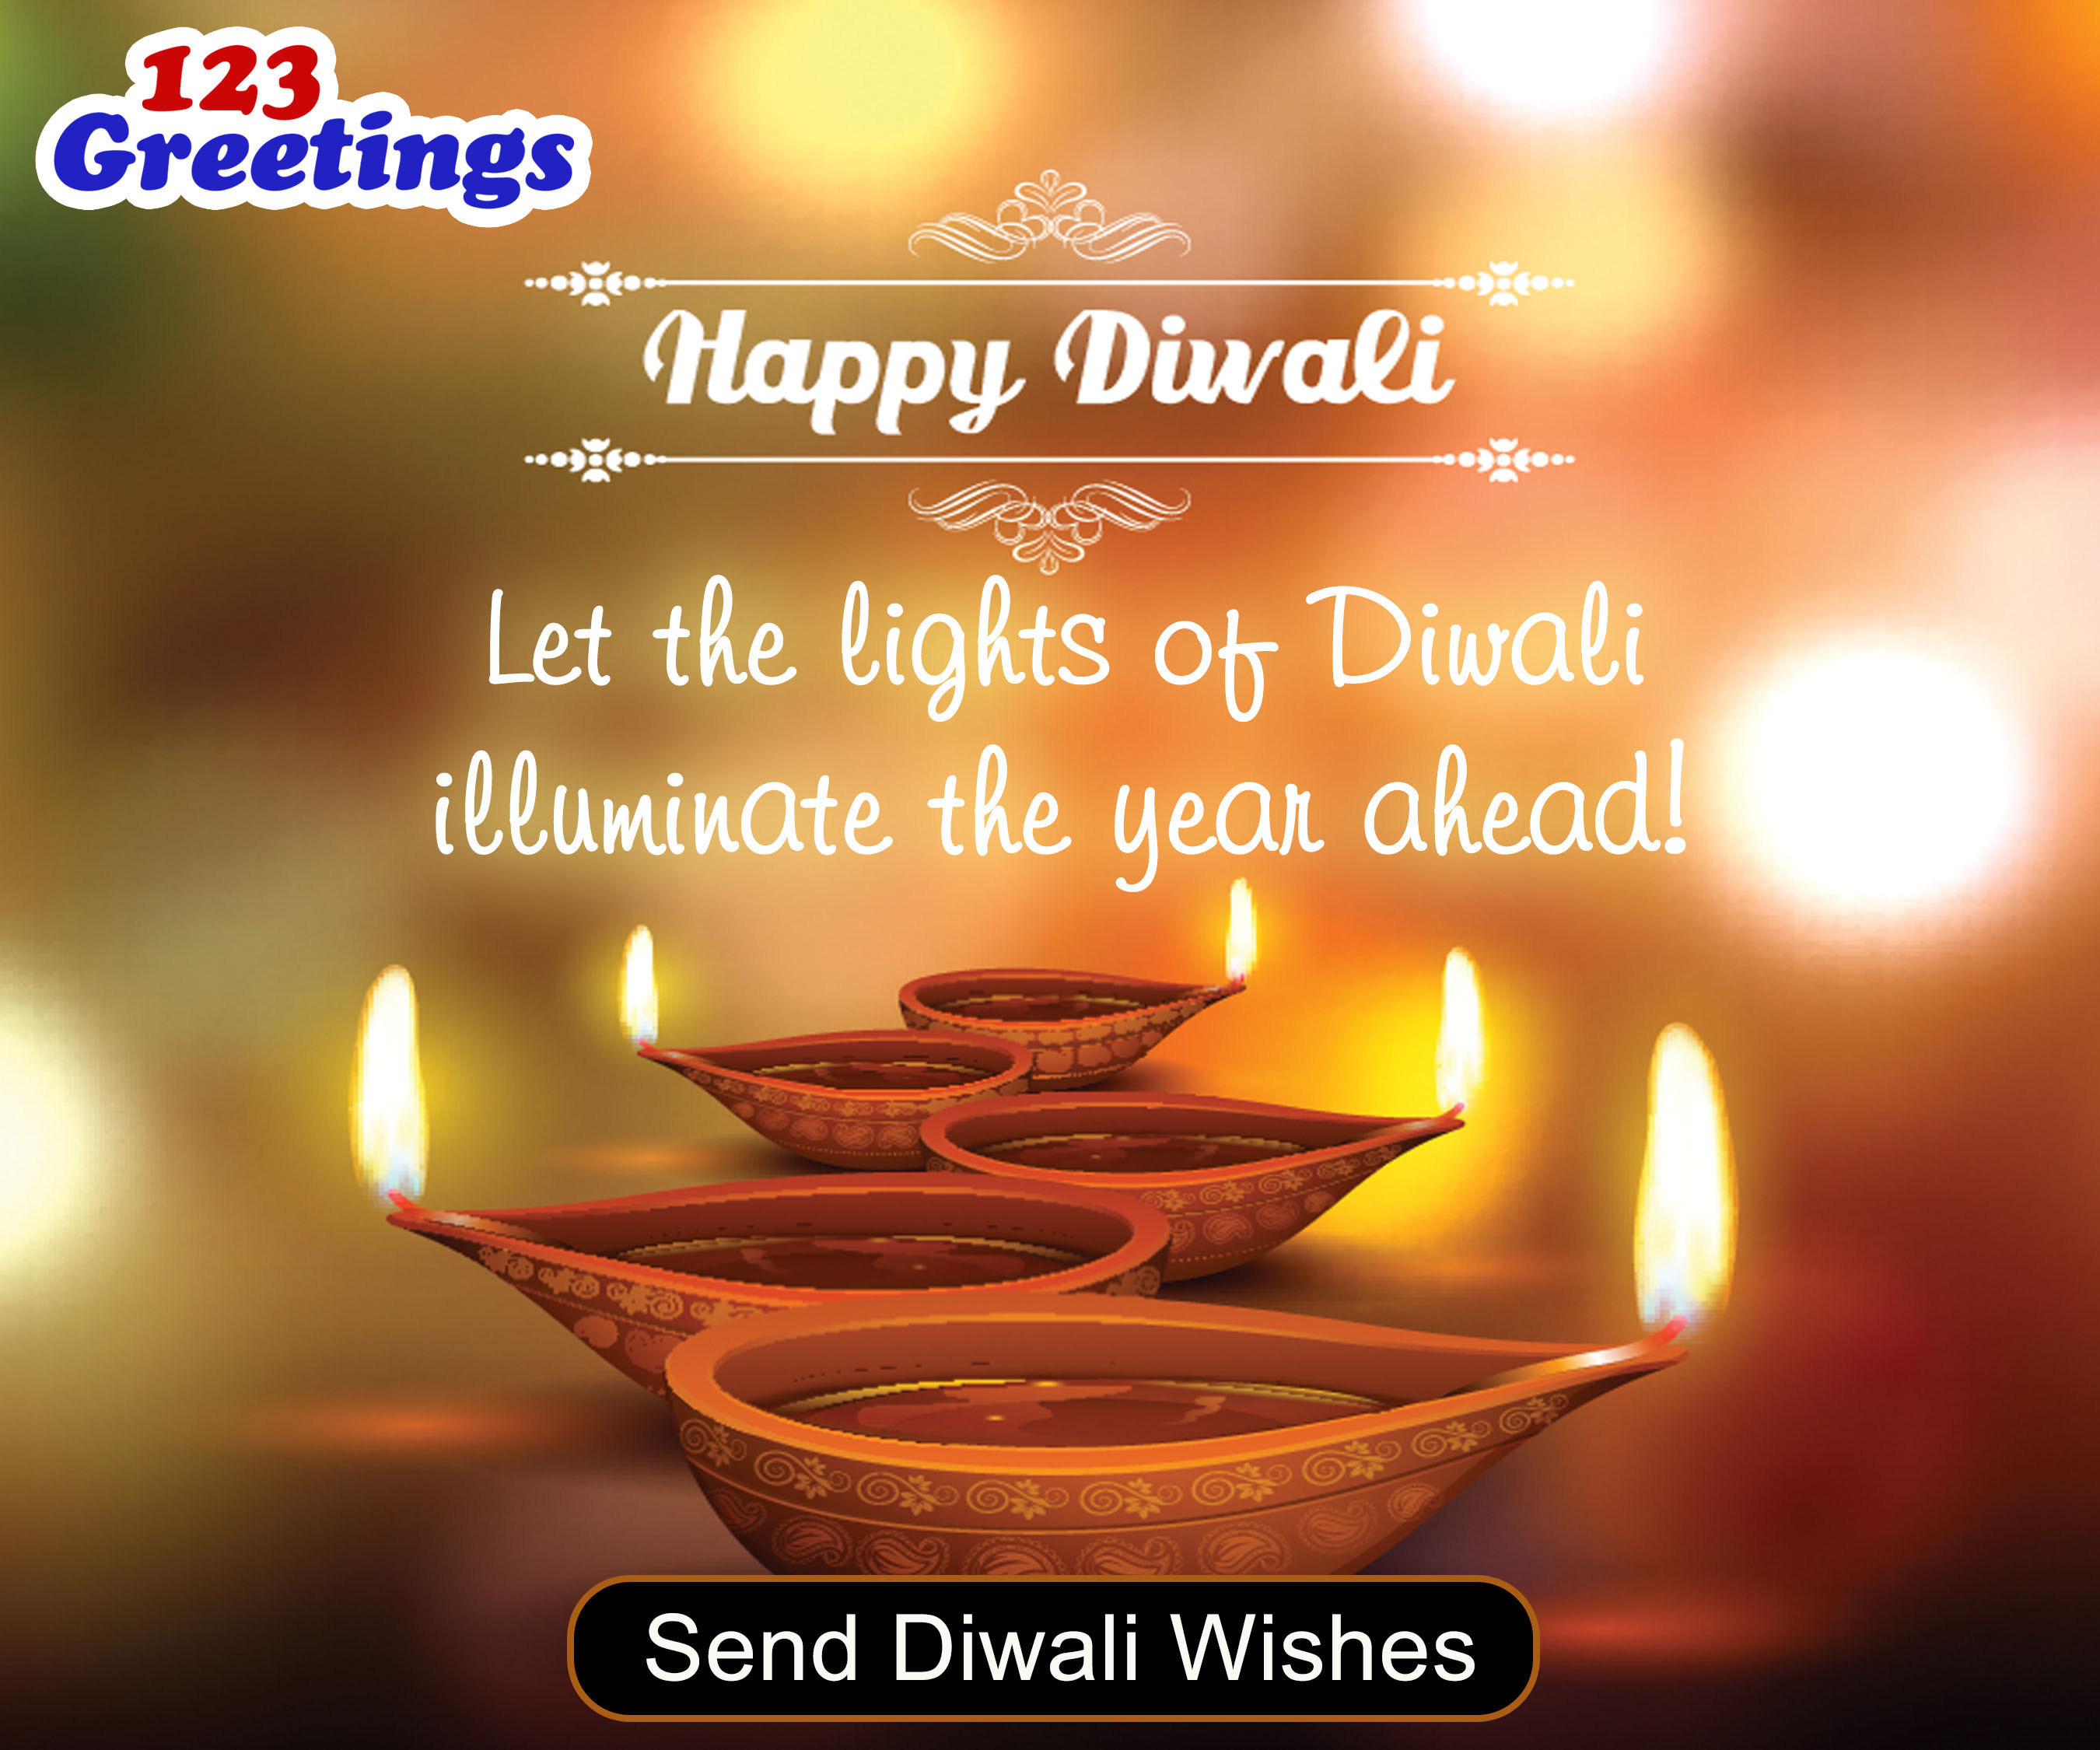 Light up this diwali with ecards from 123greetings and light up this diwali with ecards from 123greetings and illuminate the life of your loved ones m4hsunfo